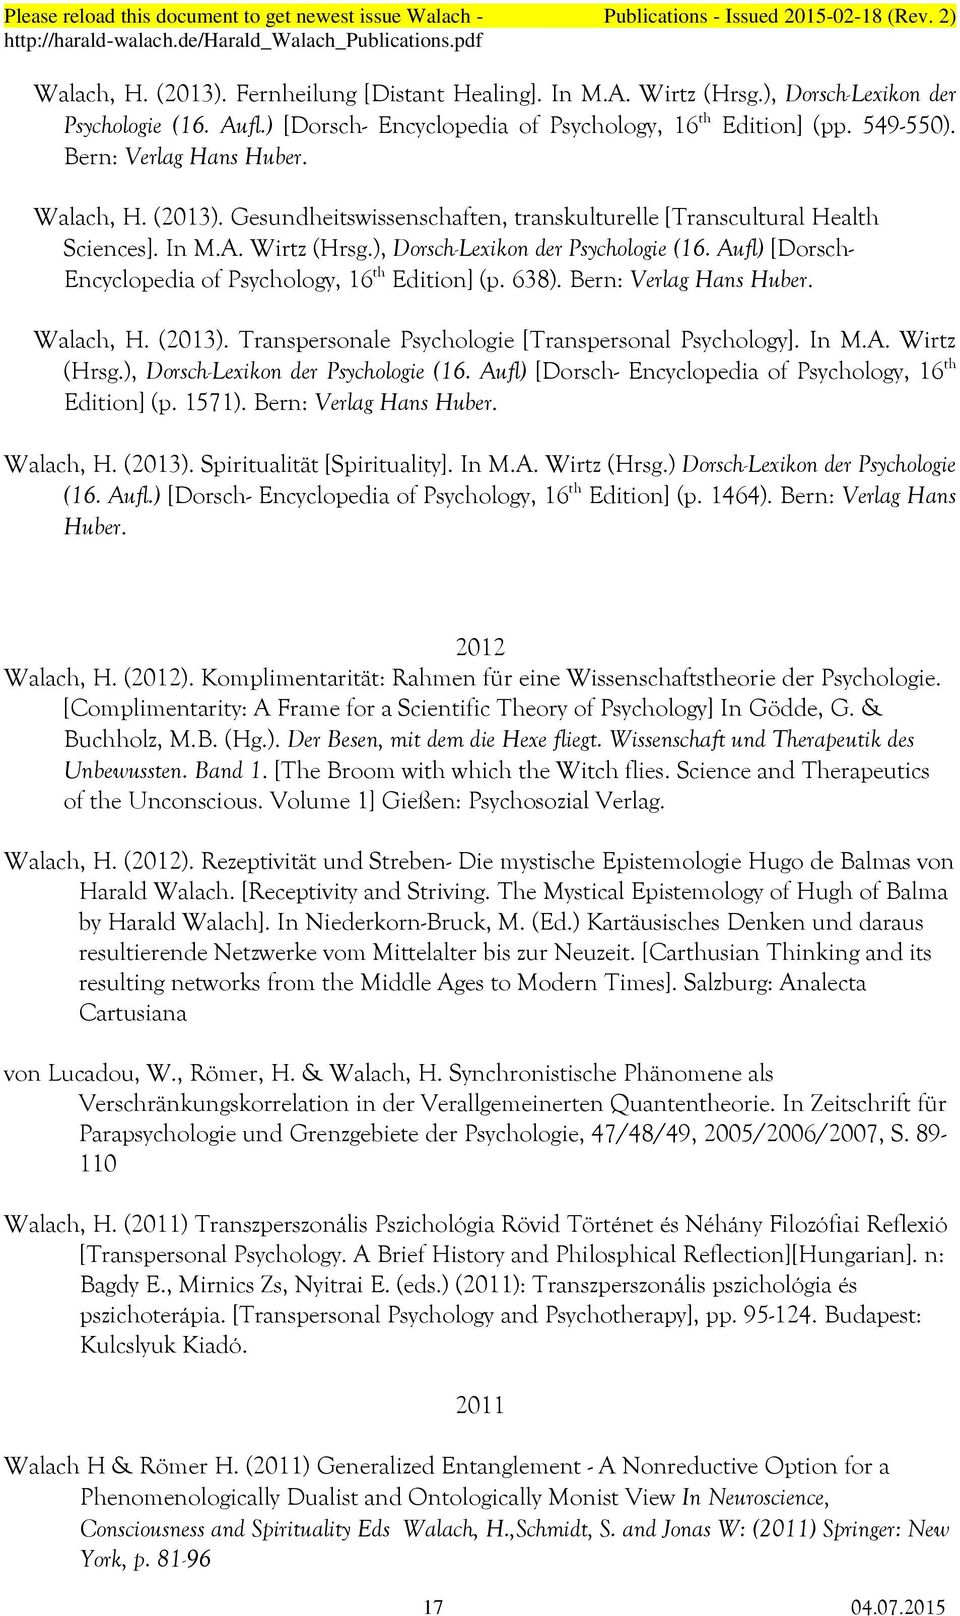 Aufl) [Dorsch- Encyclopedia of Psychology, 16 th Edition] (p. 638). Bern: Verlag Hans Huber. Walach, H. (2013). Transpersonale Psychologie [Transpersonal Psychology]. In M.A. Wirtz (Hrsg.